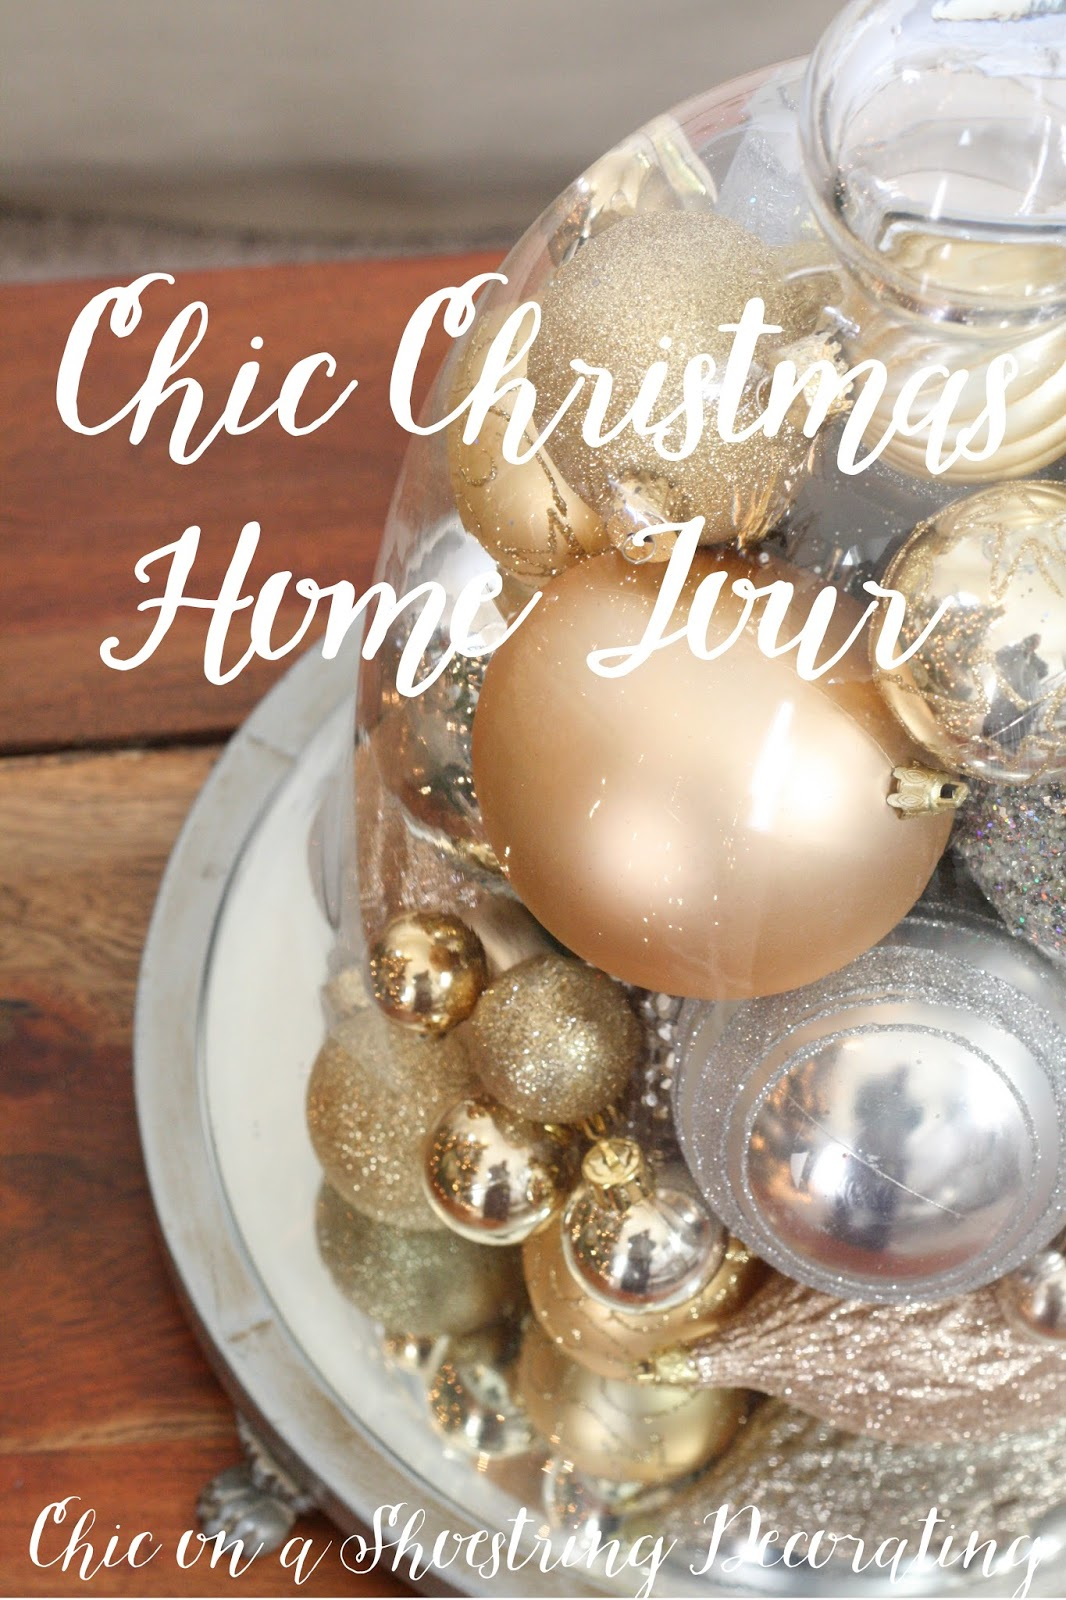 Christmas Decorating Blogs chic on a shoestring decorating: chic christmas decor, merry